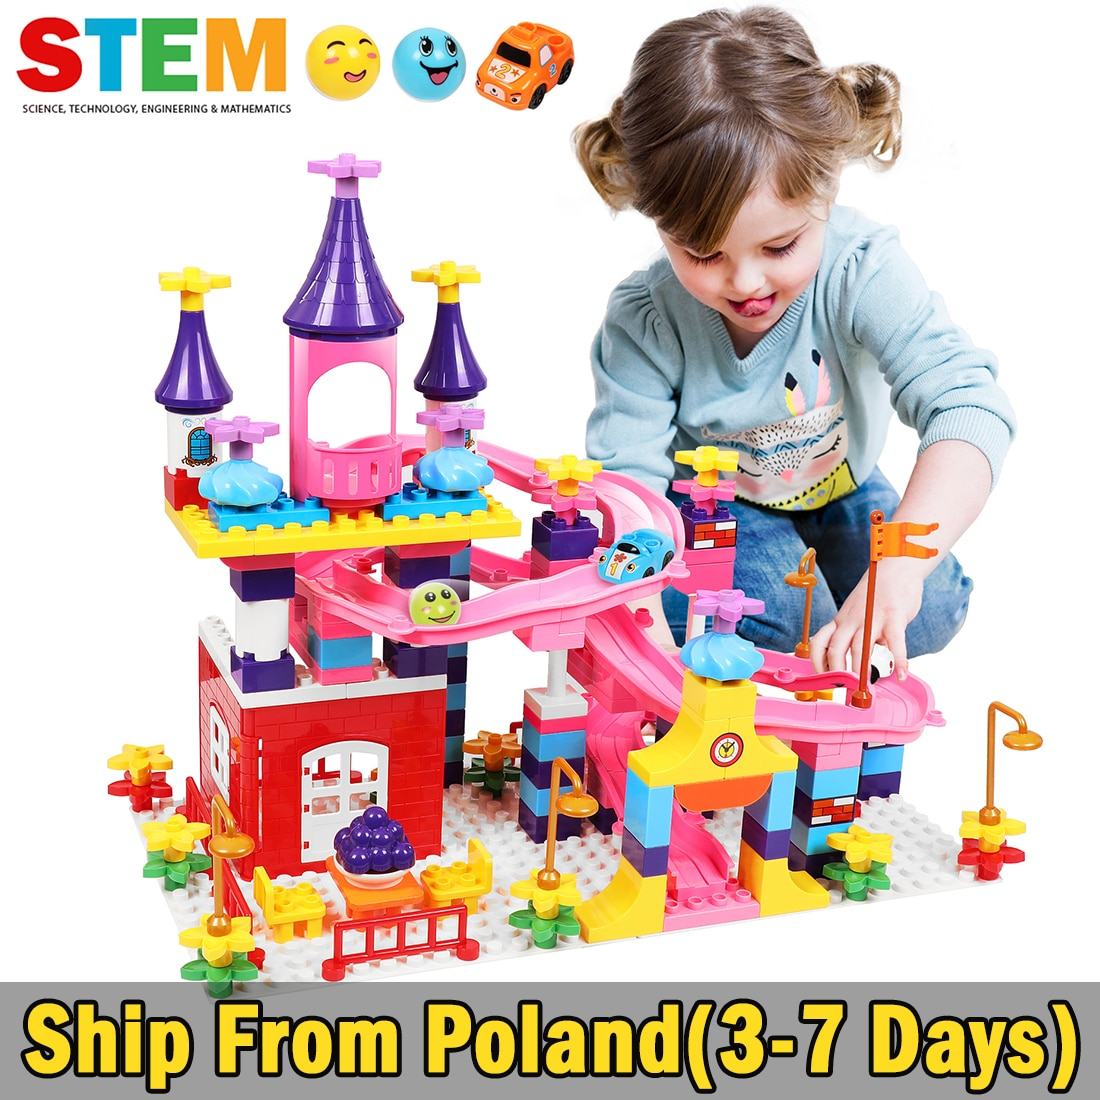 10551 elves ragana s magic shadow castle model building blocks bricks toys girls toys compatible with lego gift kid set girls Marble Run Slide Building Blocks Compatible Duploed Girls Castle Kids Toys Blocks With Figures Cars Toys For Children Girls